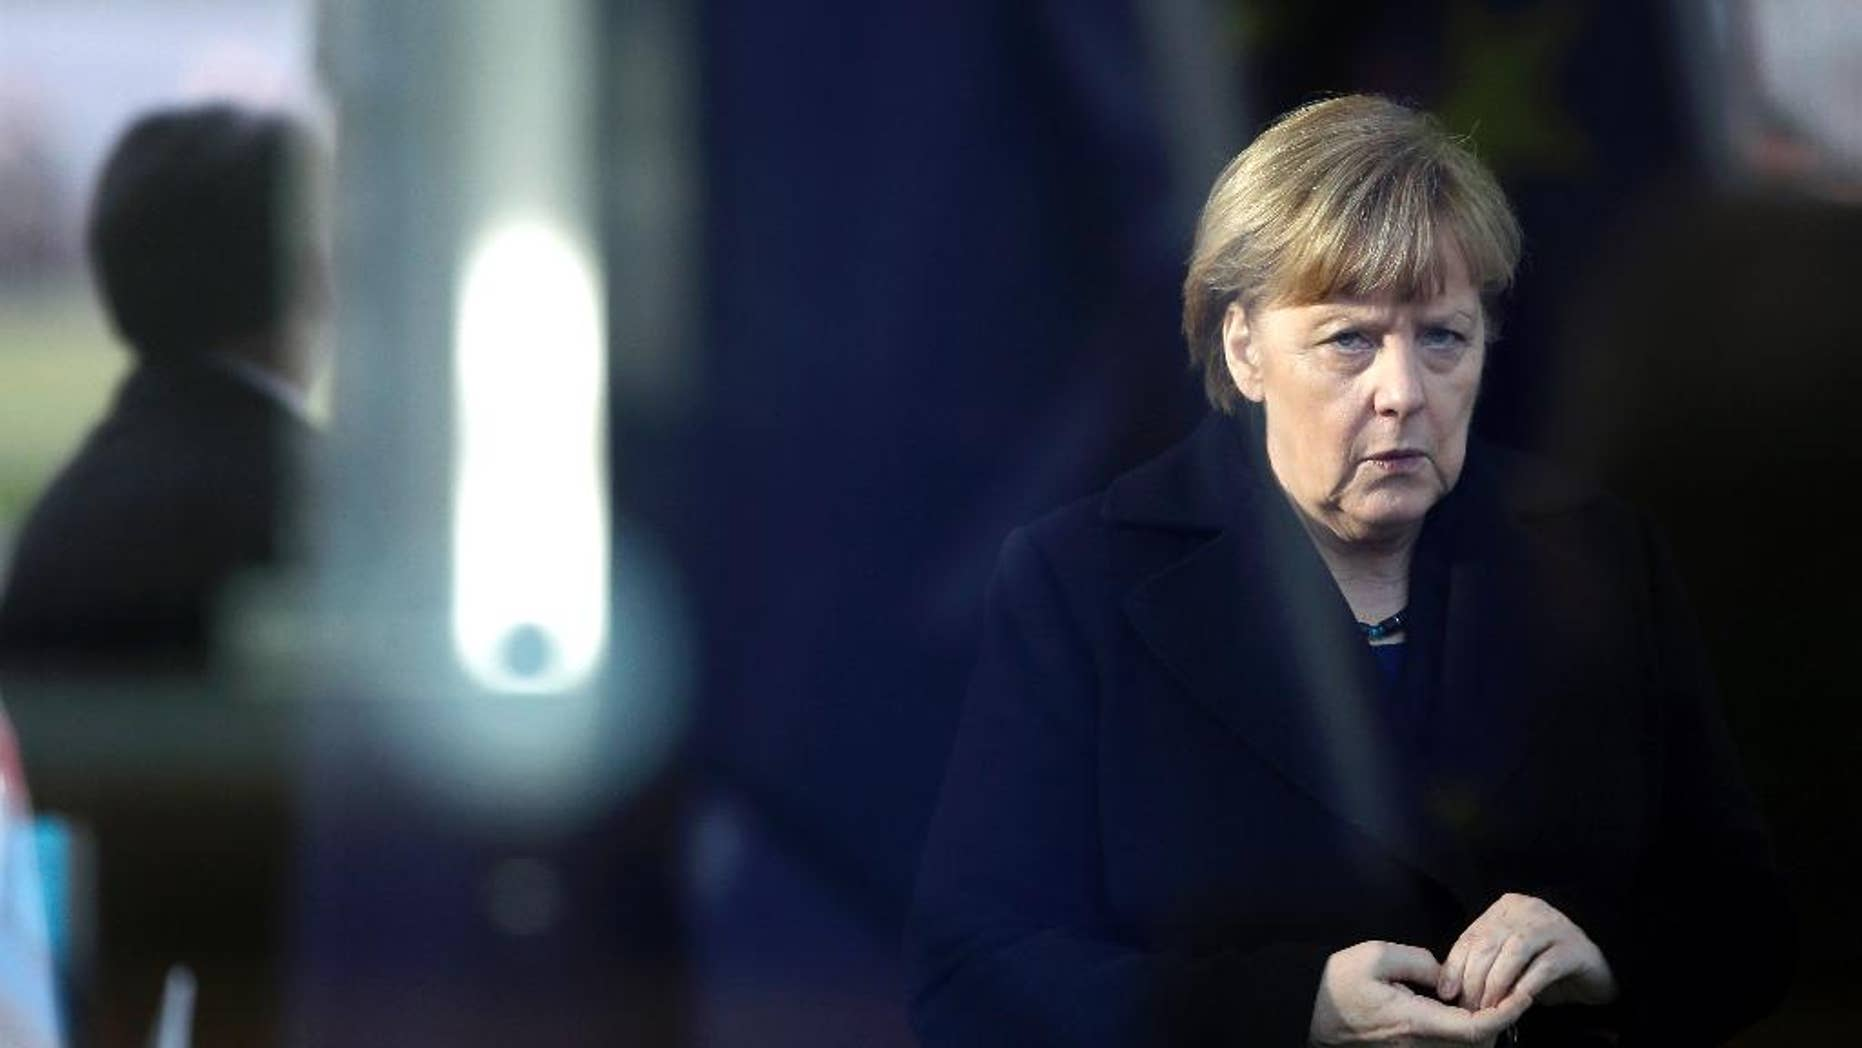 German Chancellor Angela Merkel is pictured trough a window as she waits for the arrival of NATO Secretary General Jens Stoltenberg at the chancellery in Berlin, Germany, Wednesday, Jan. 14, 2015. (AP Photo/Michael Sohn)